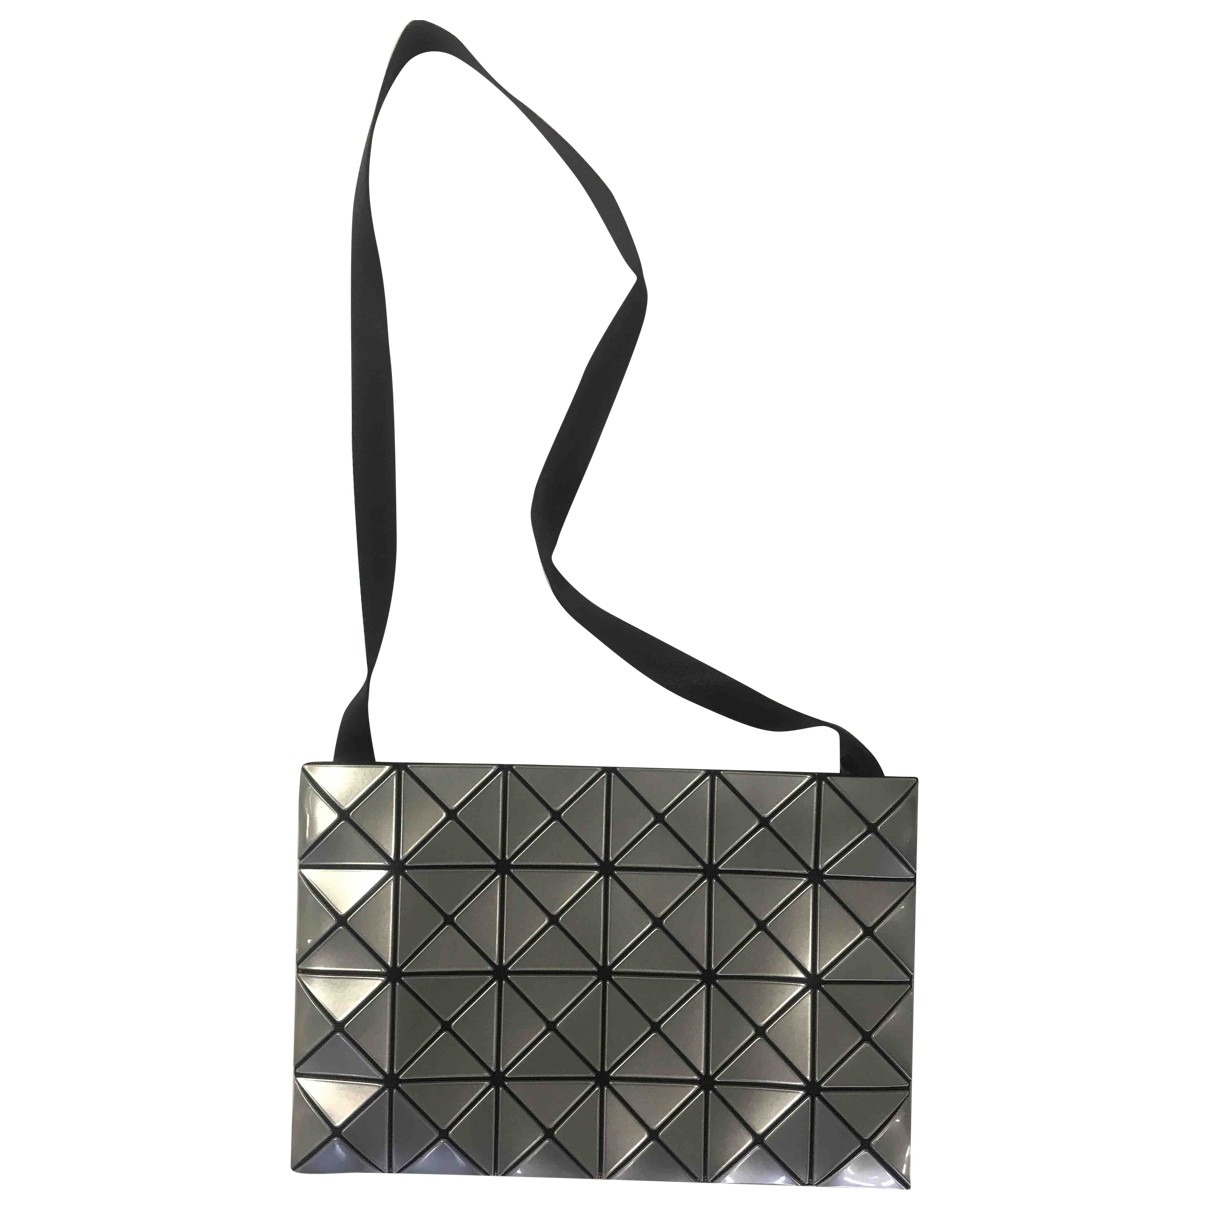 Issey Miyake - Sac a main   pour femme - gris